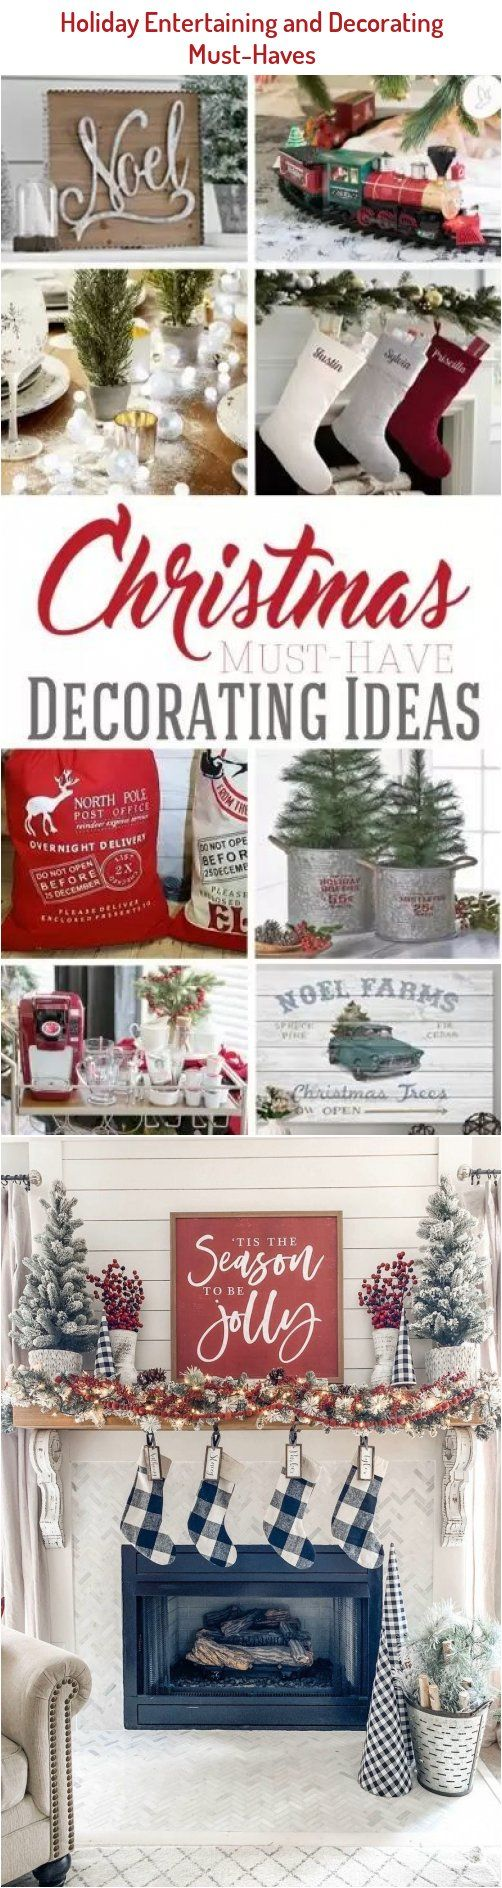 Need Some Affordable Christmas Decorating Ideas These Simple Decor Must Haves Work Great For I In 2020 Indoor Christmas Decorations Holiday Decor Affordable Christmas